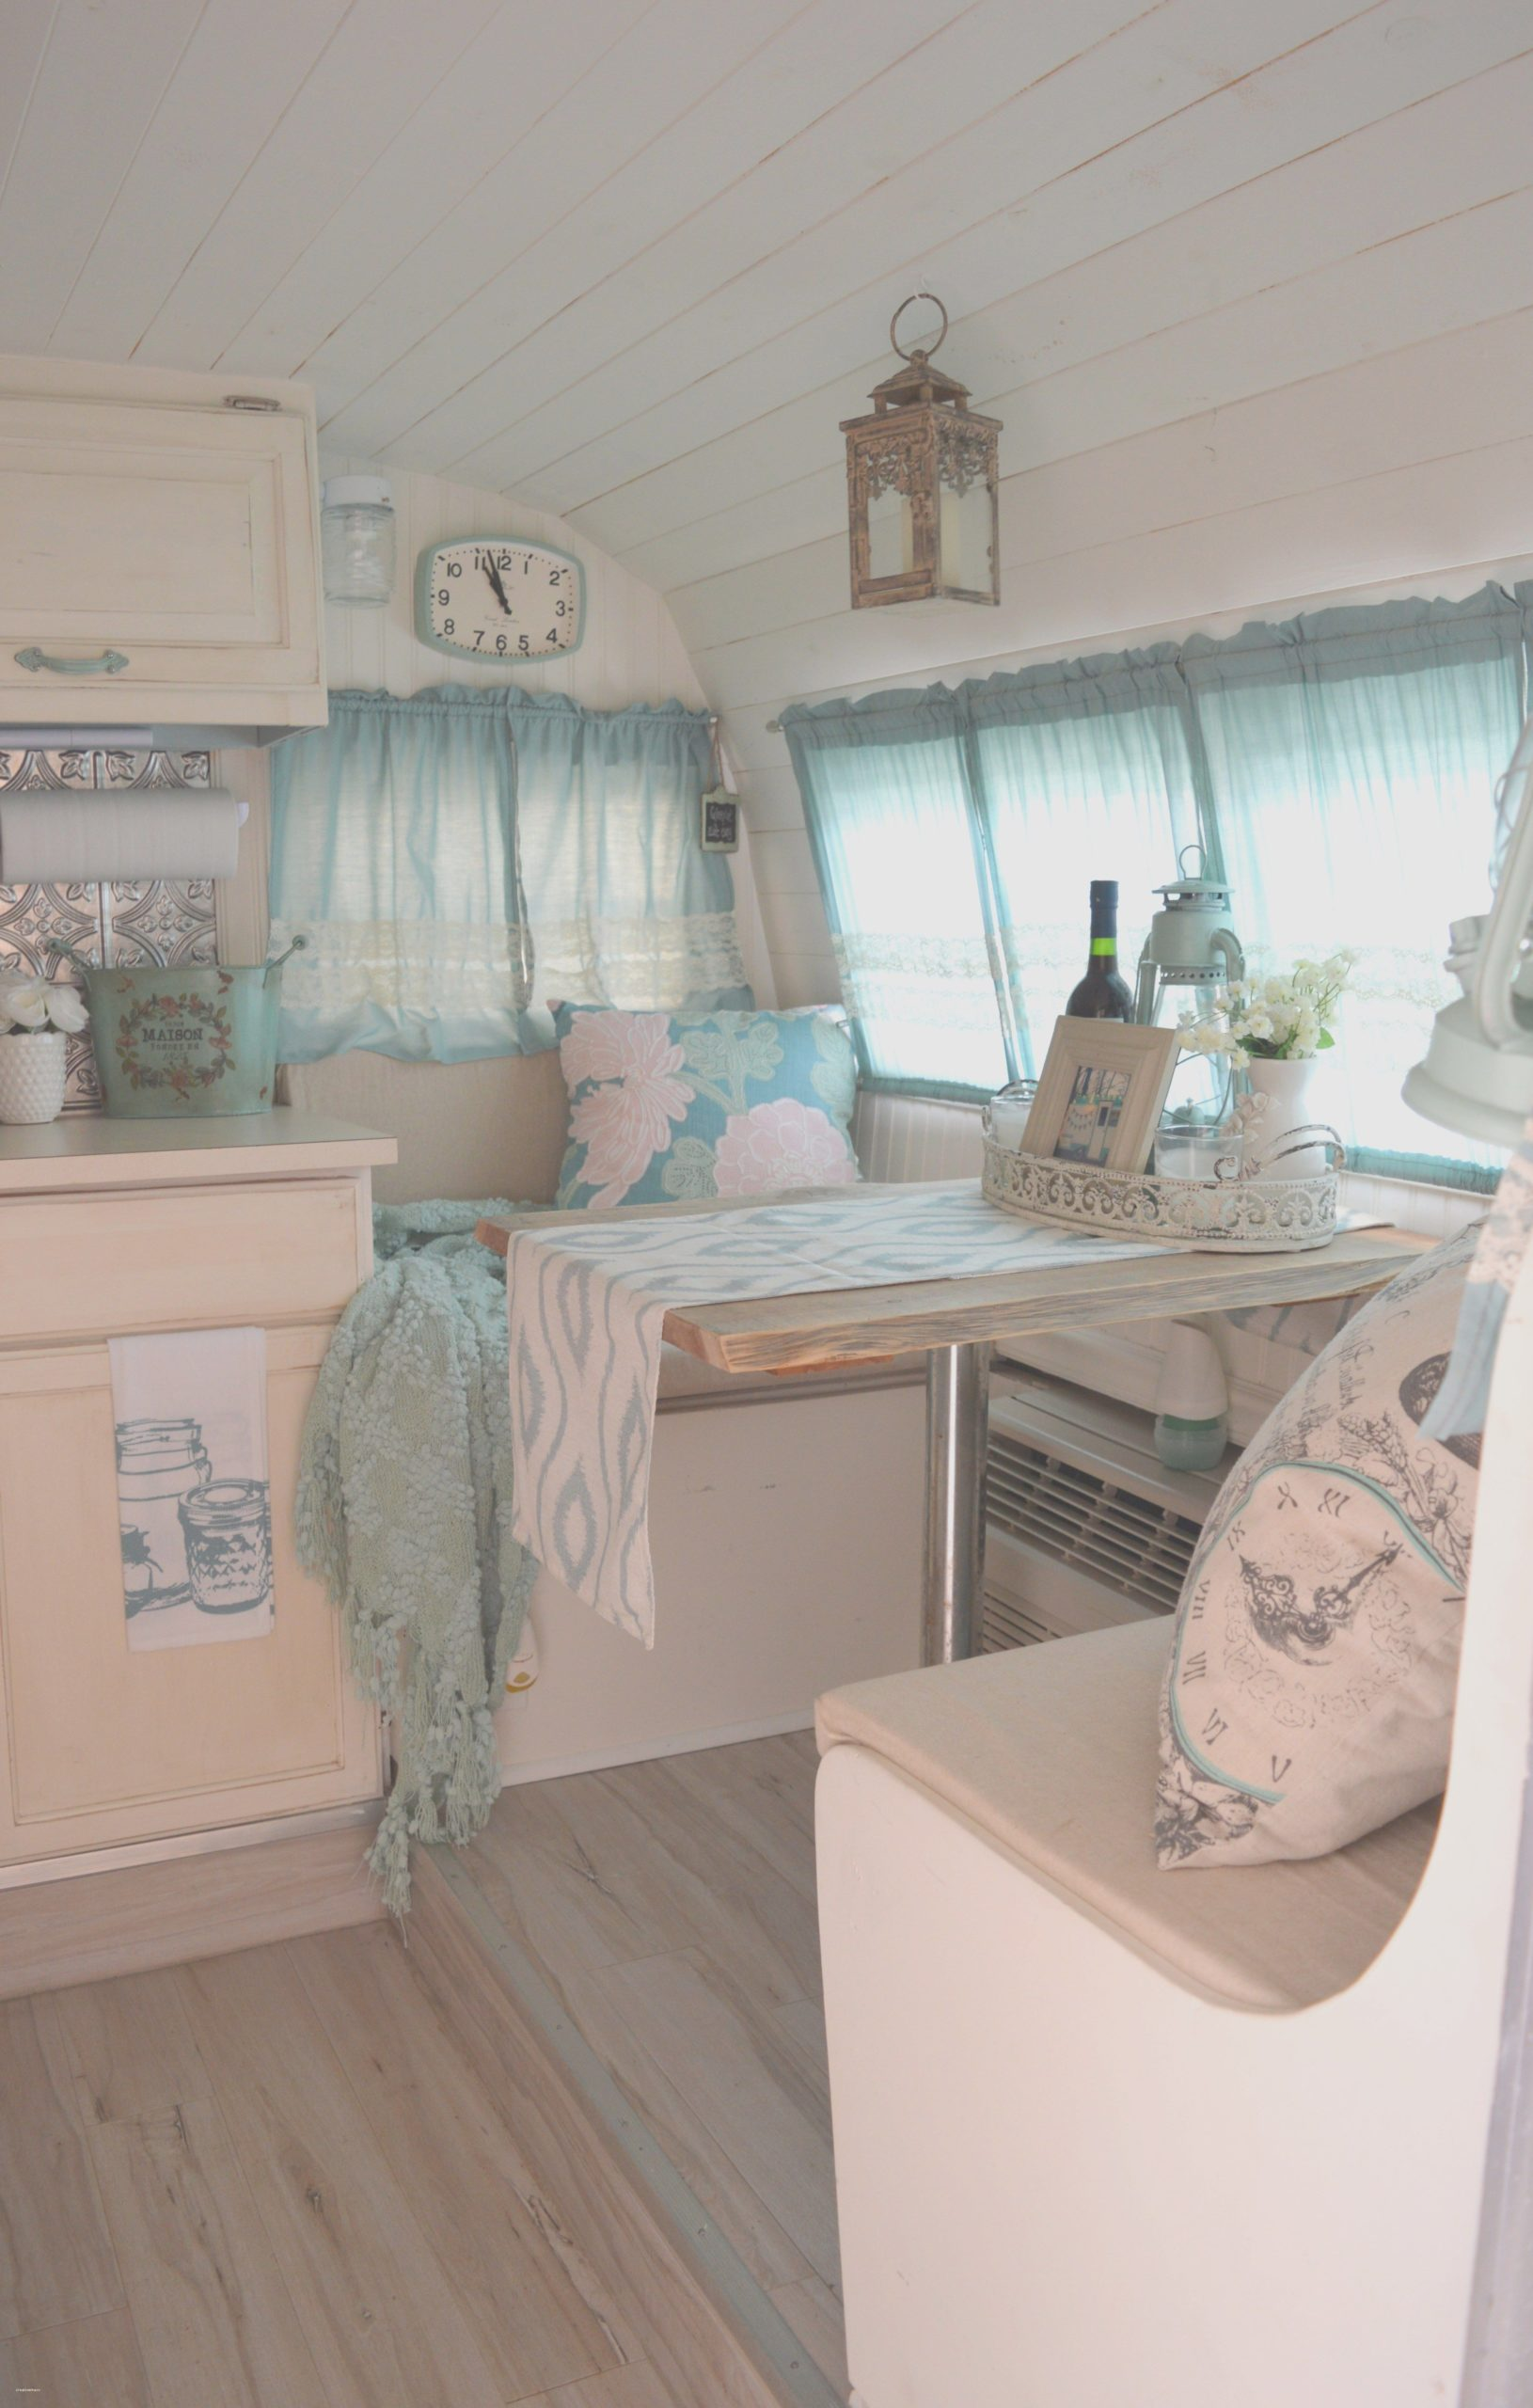 30 Marvelous Picture of Vintage Travel Trailers Remodel Ideas